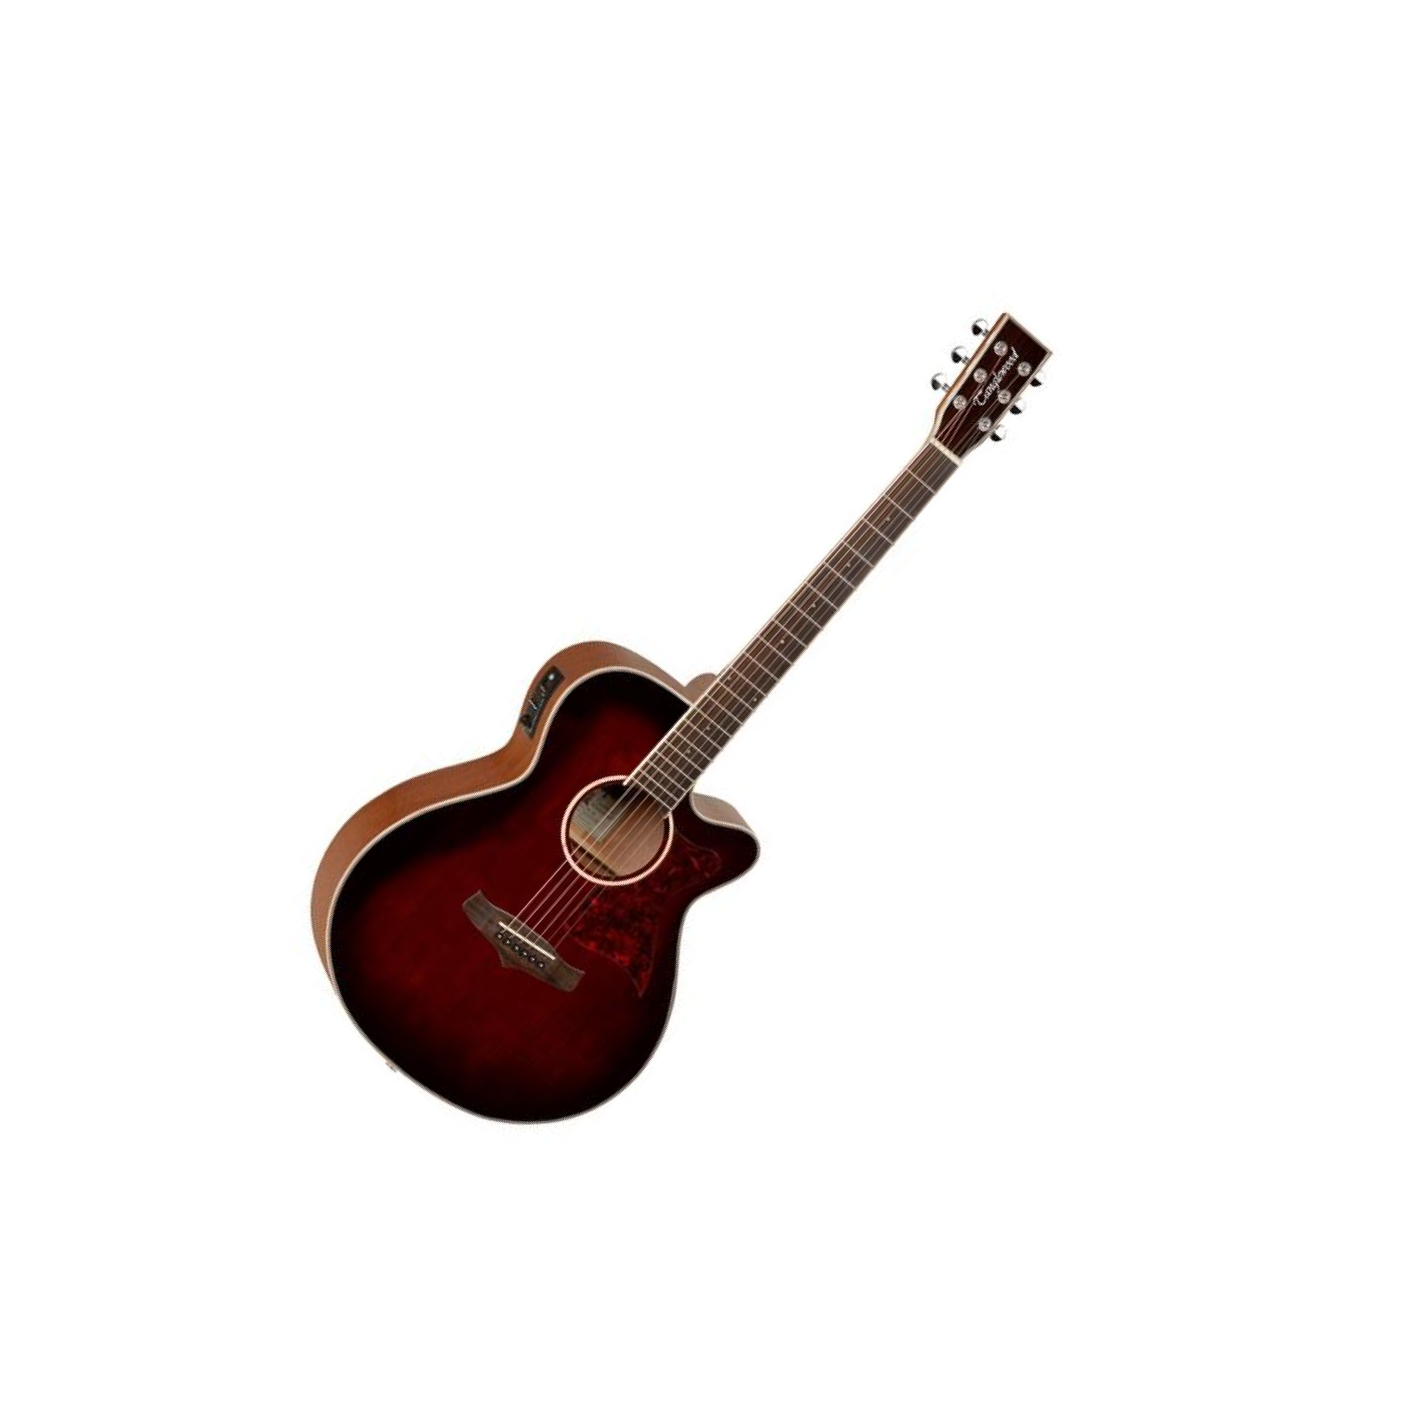 Tanglewood Winterleaf TW4 WB Whisky Barrel Burst